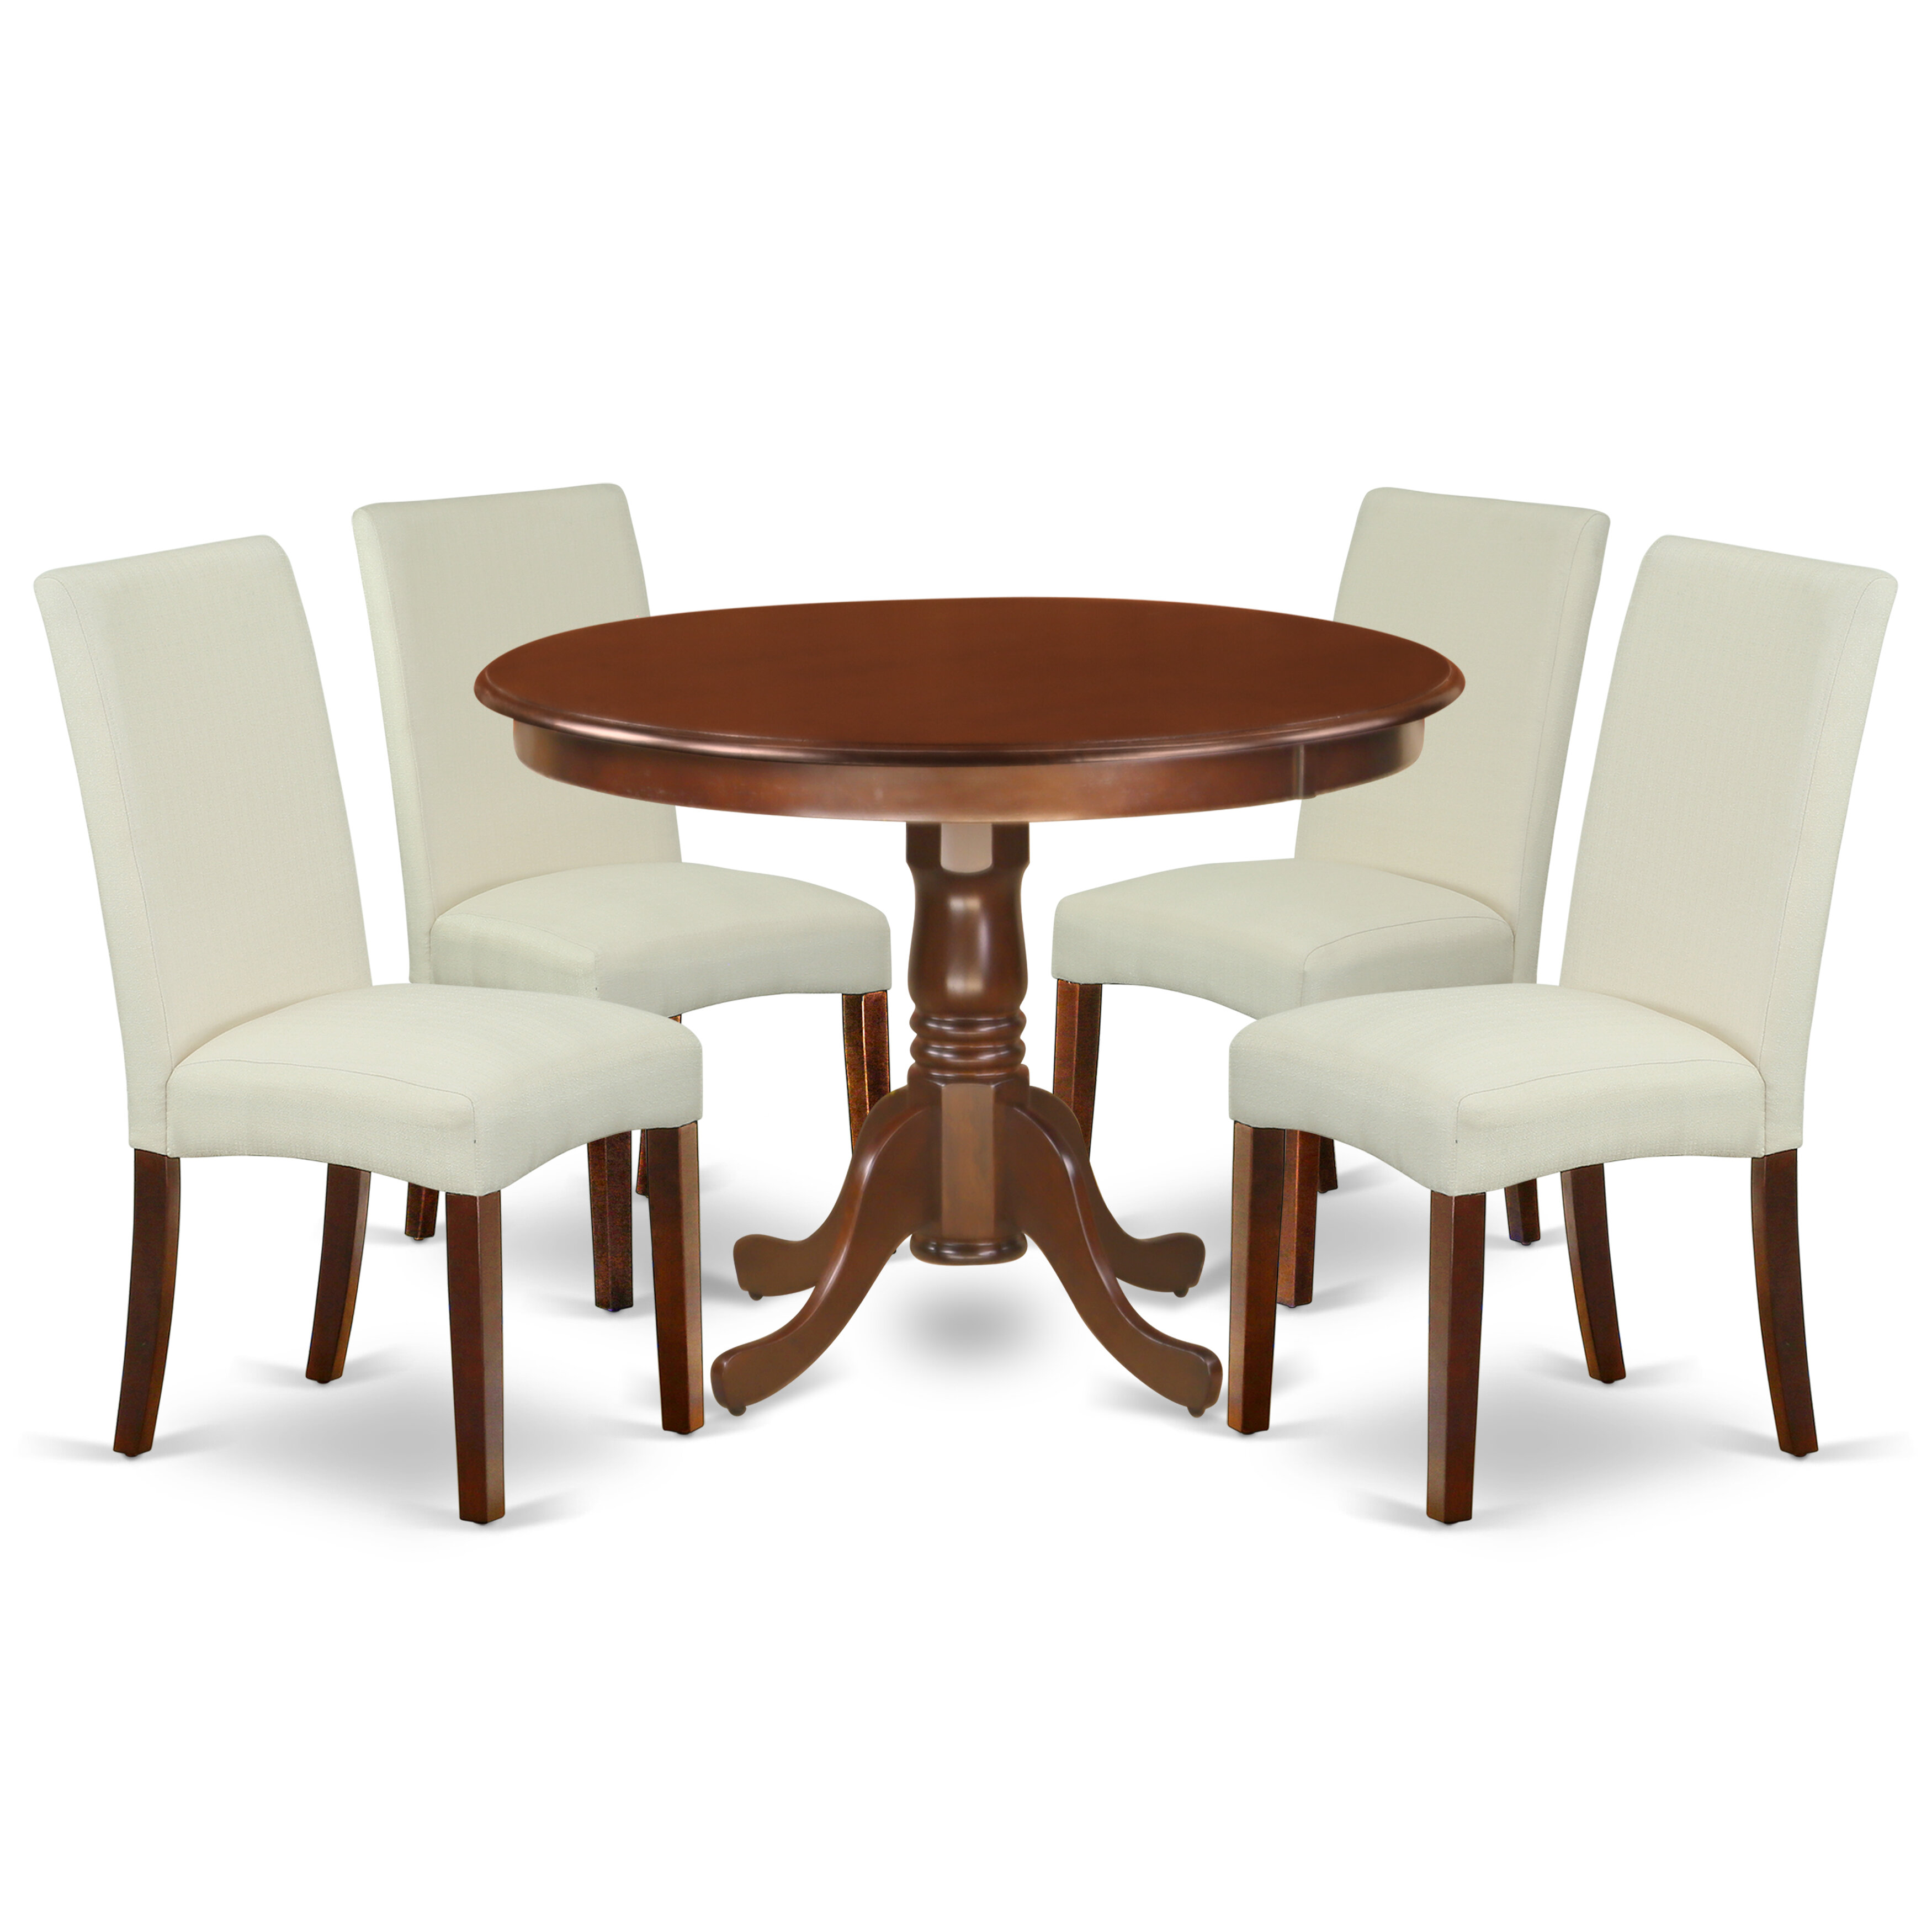 Winston Porter Chillon 5 Piece Rubberwood Solid Wood Breakfast Nook Dining Set Reviews Wayfair